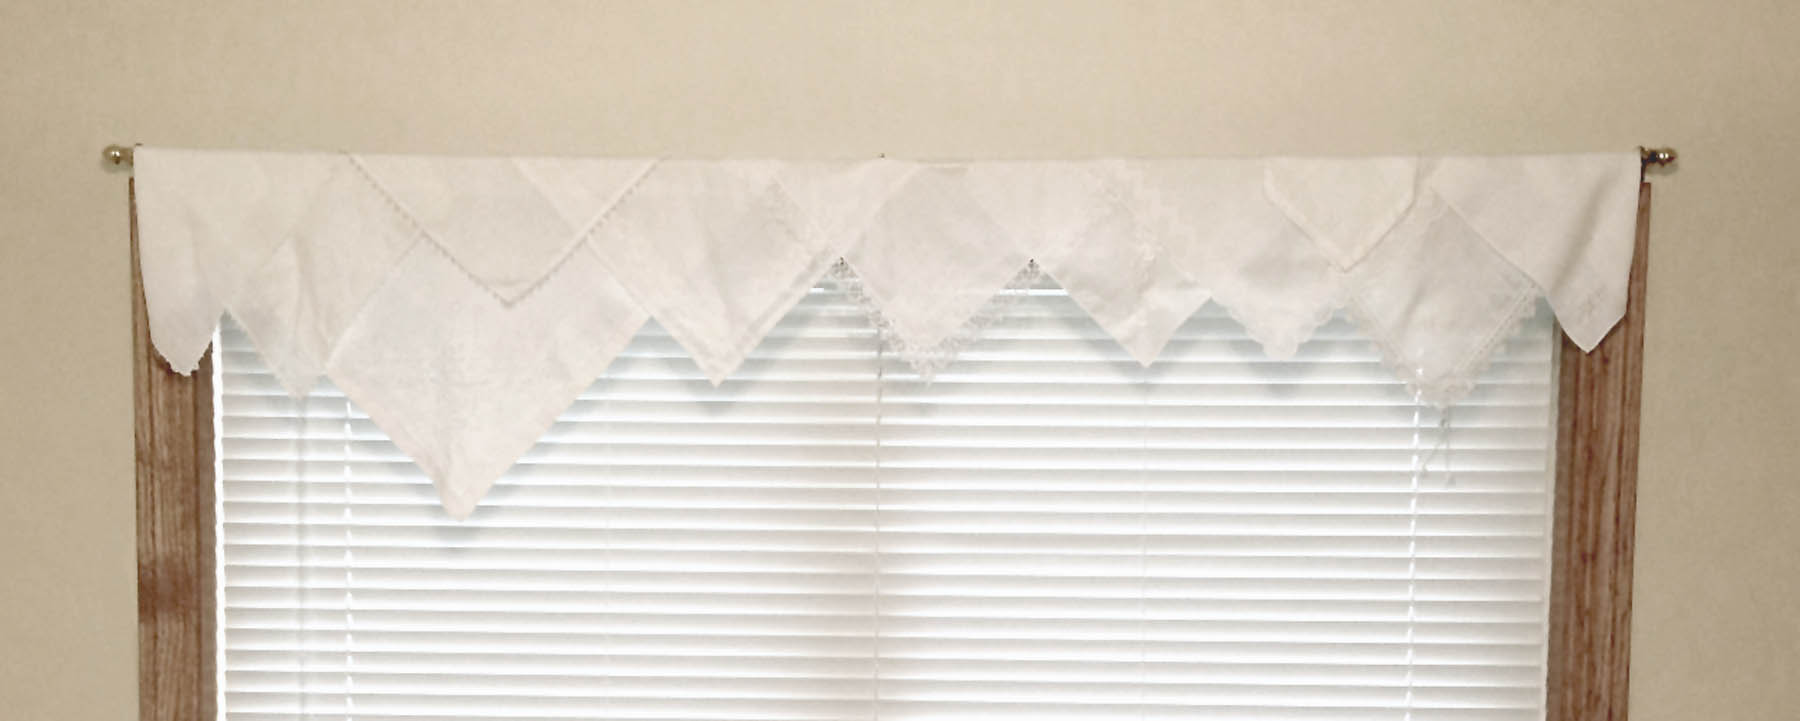 Grandma's hankies made into a valance {Love My DIY Home}